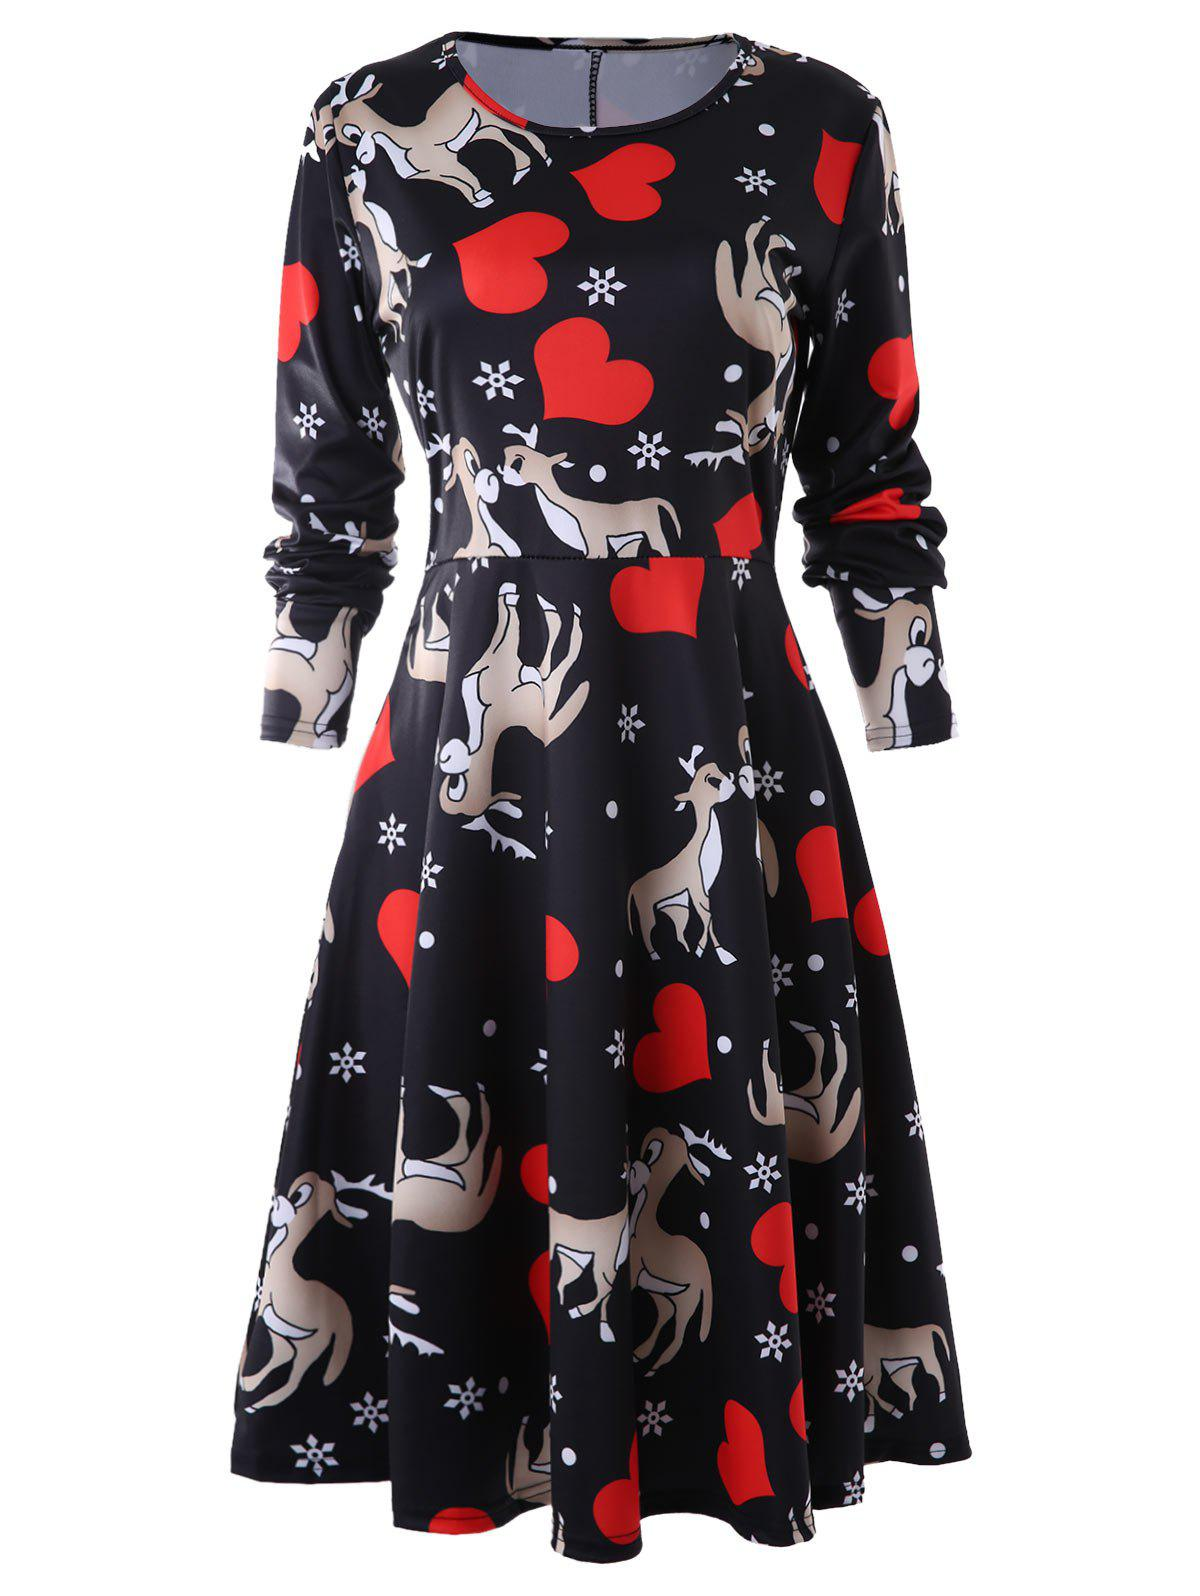 Heart Deer Print Sewing Dress - multicolor S